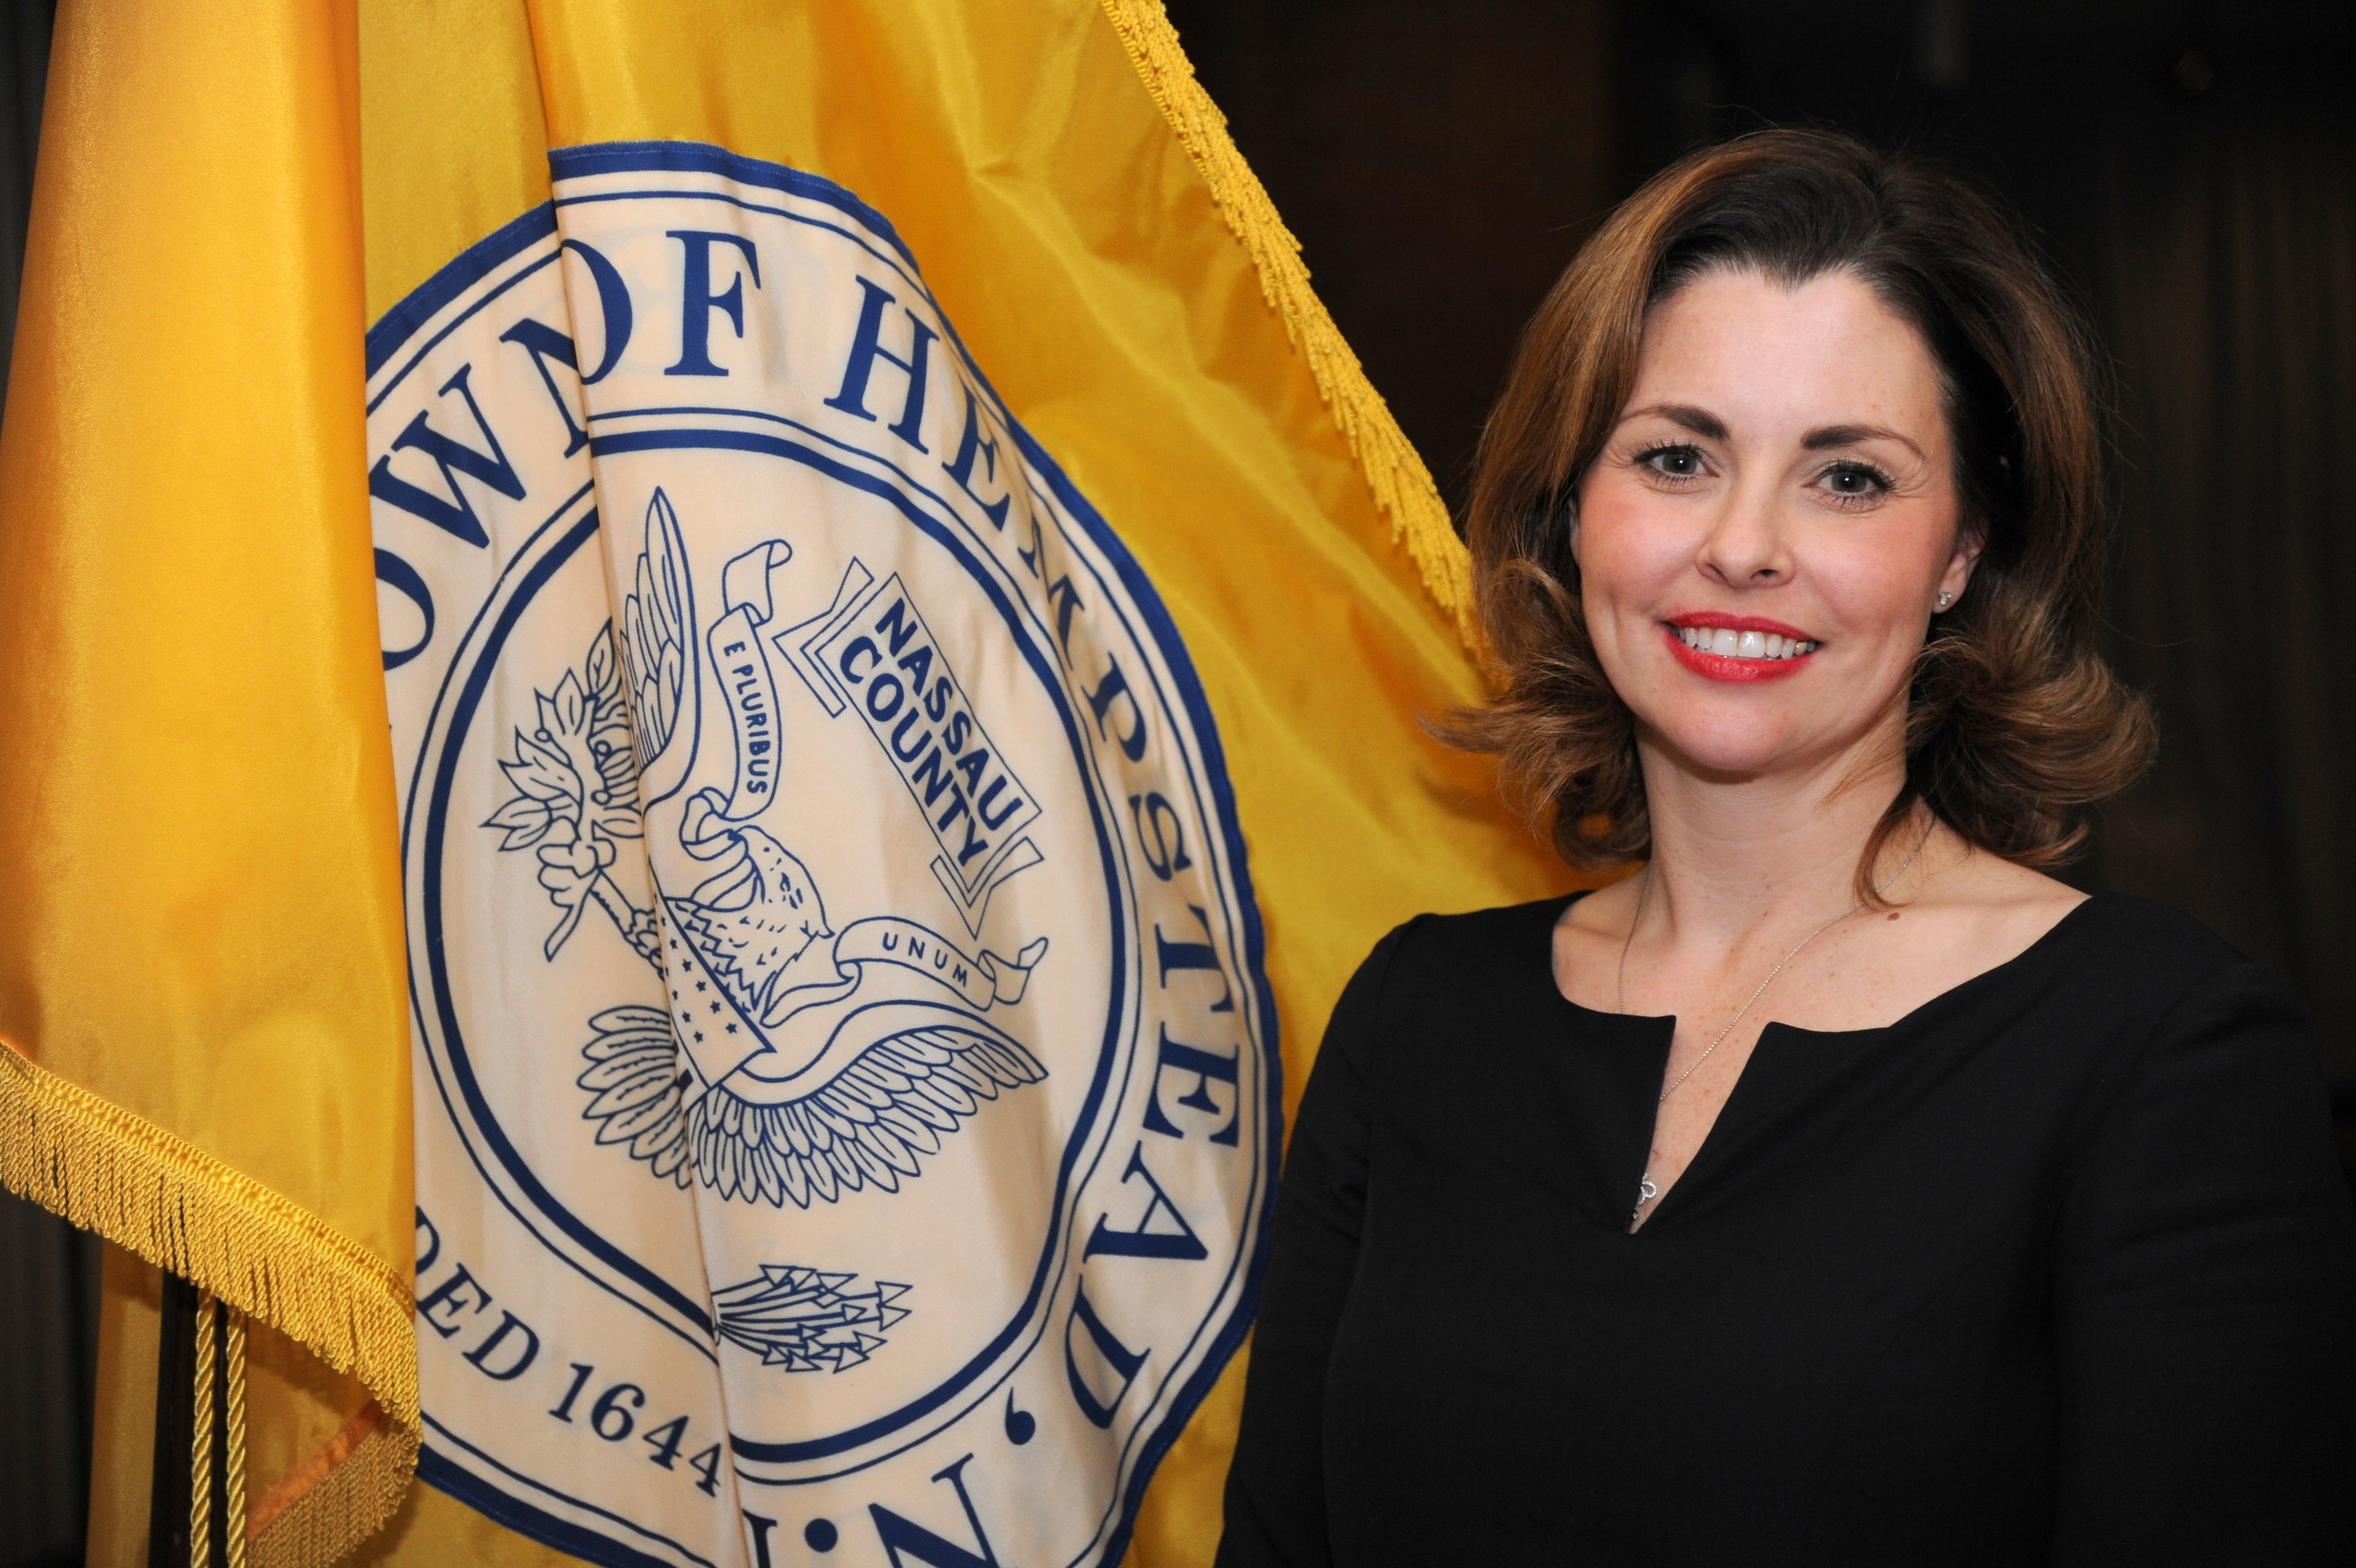 Hempstead Town Councilwoman Erin King Sweeney announced Thursday that she would not seek re-election to the Town Board.